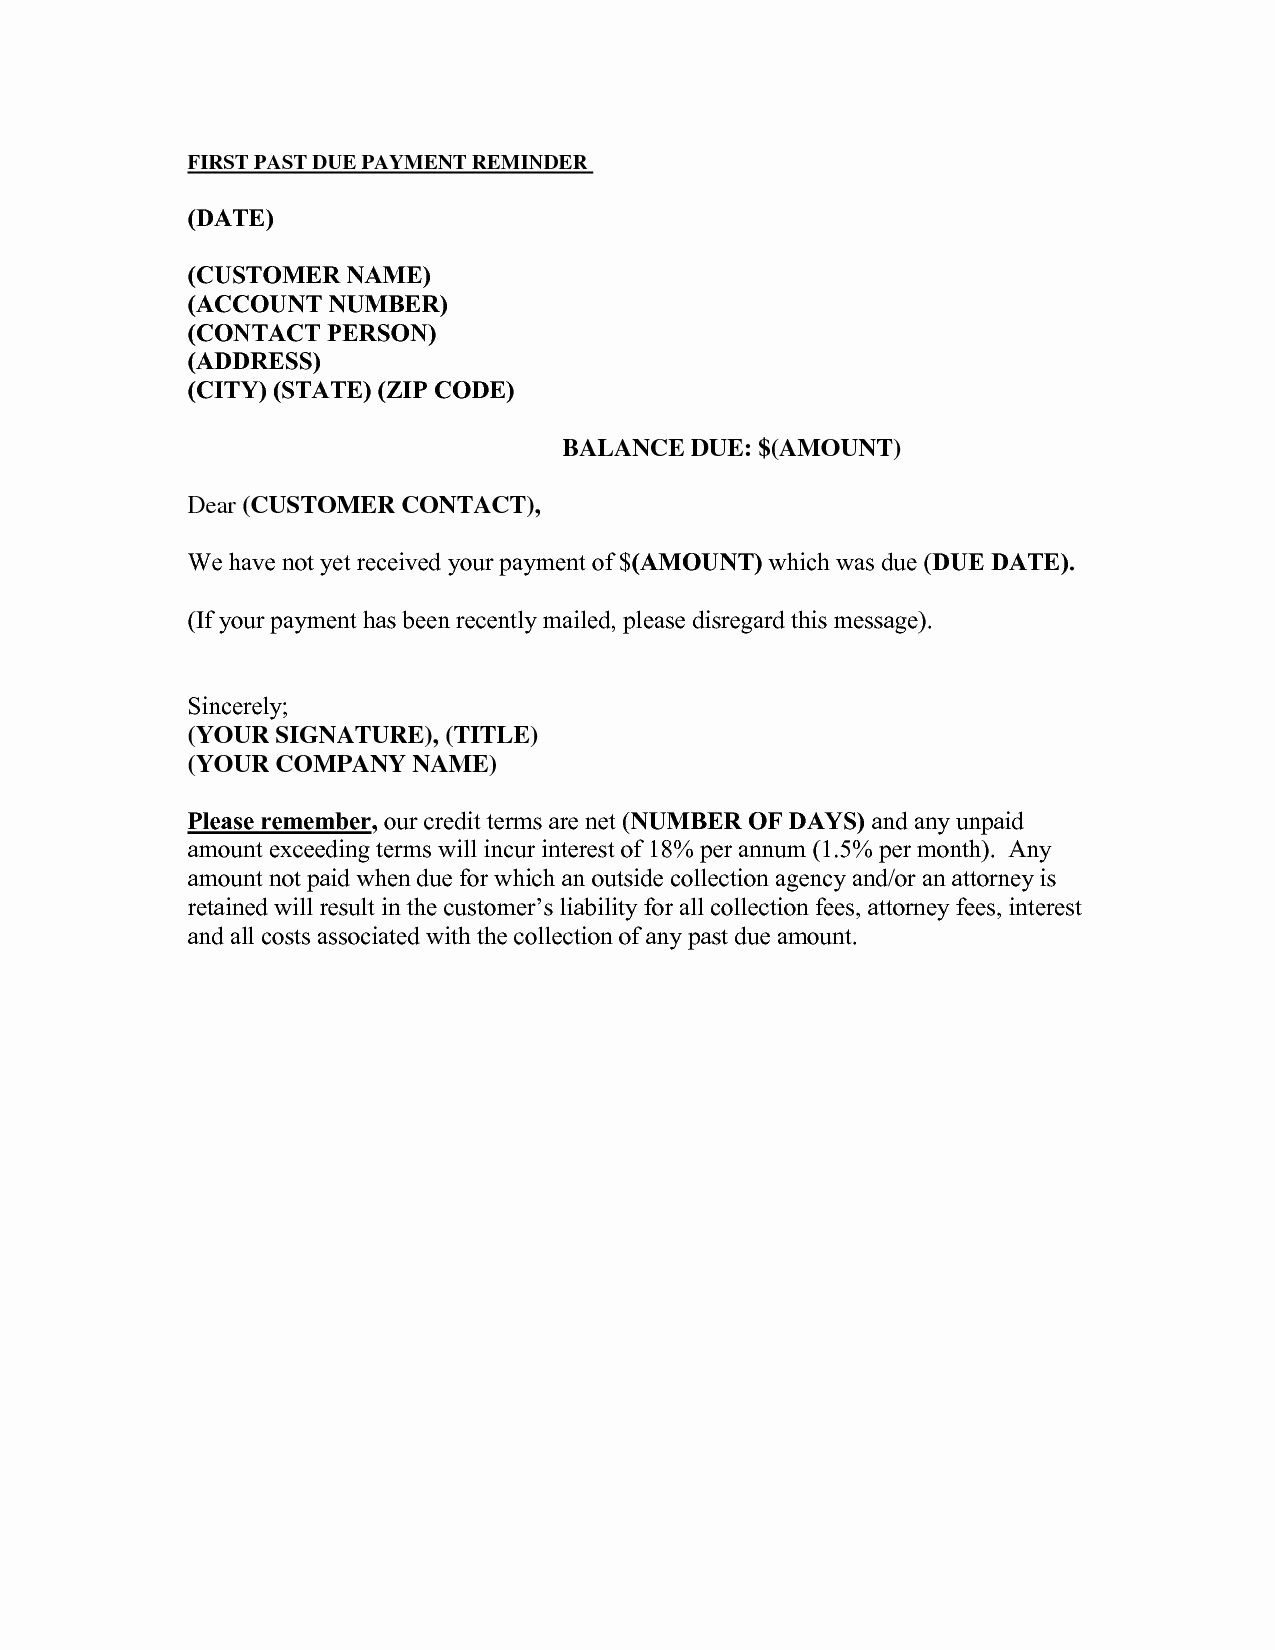 Late Rent Notice Template Unique Late Rent Notice Free Printable Documents Late Rent Notice Rent Rent Me